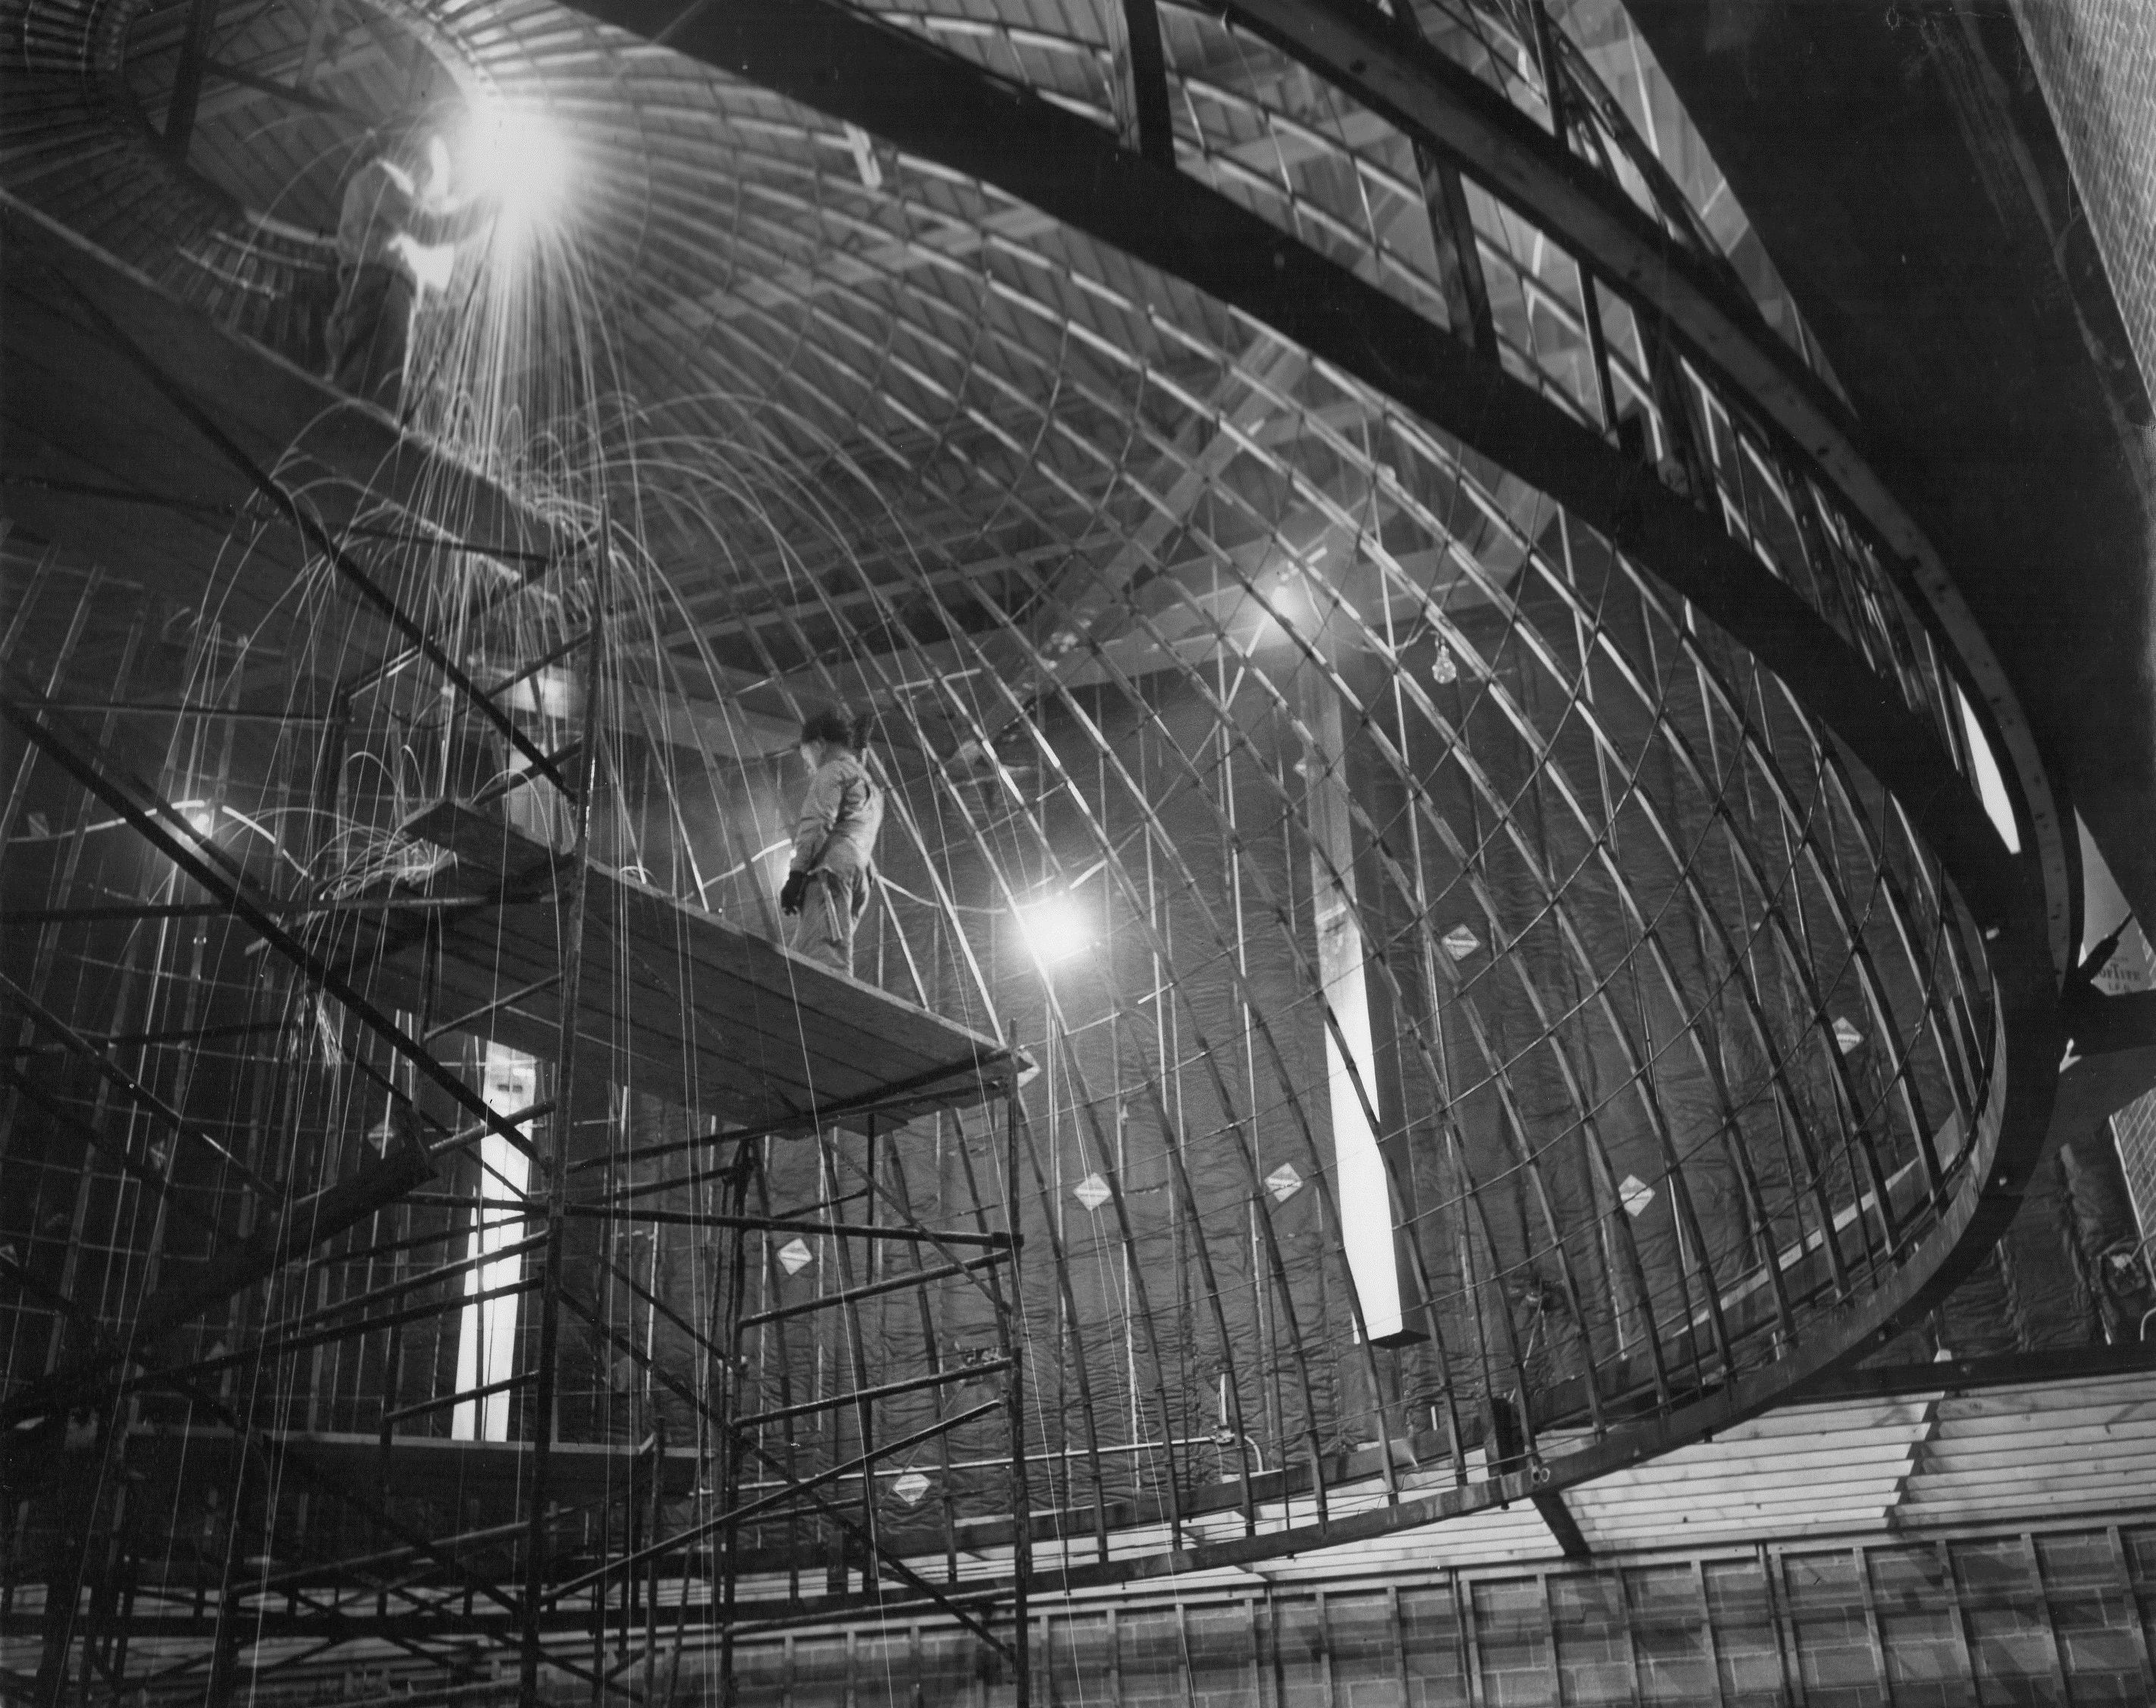 Planetarium construction (1957)